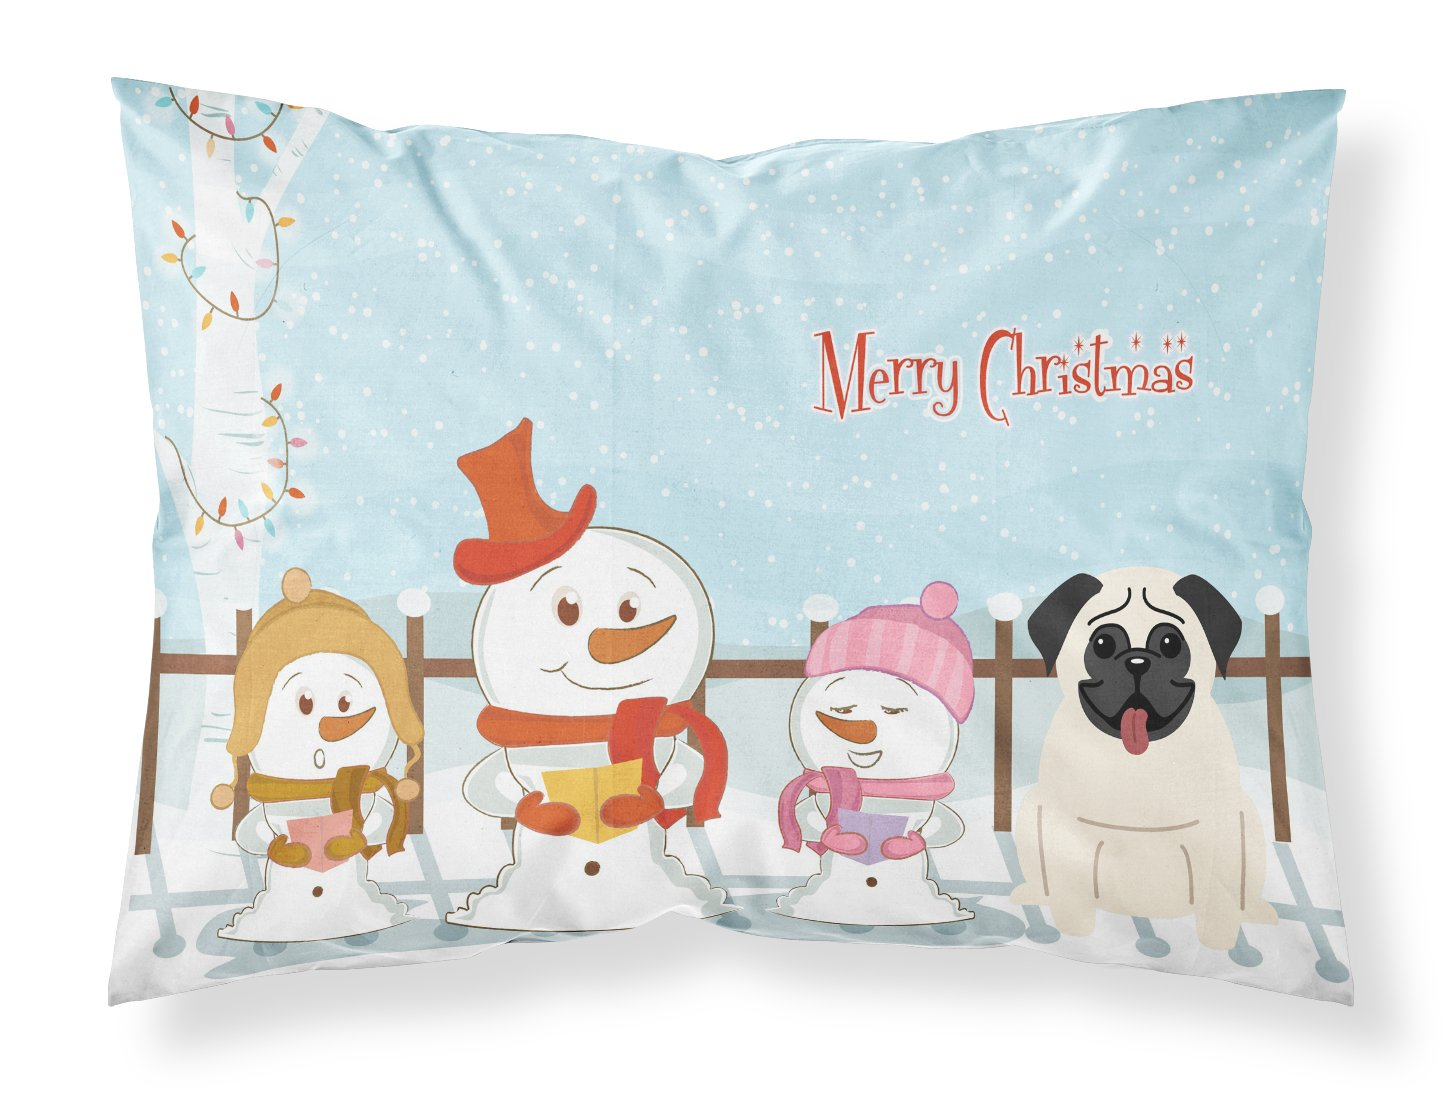 Carolines Treasures Merry Christmas Carolers Pug Cream Fabric Standard Pillowcase BB2335PILLOWCASE Multicolor